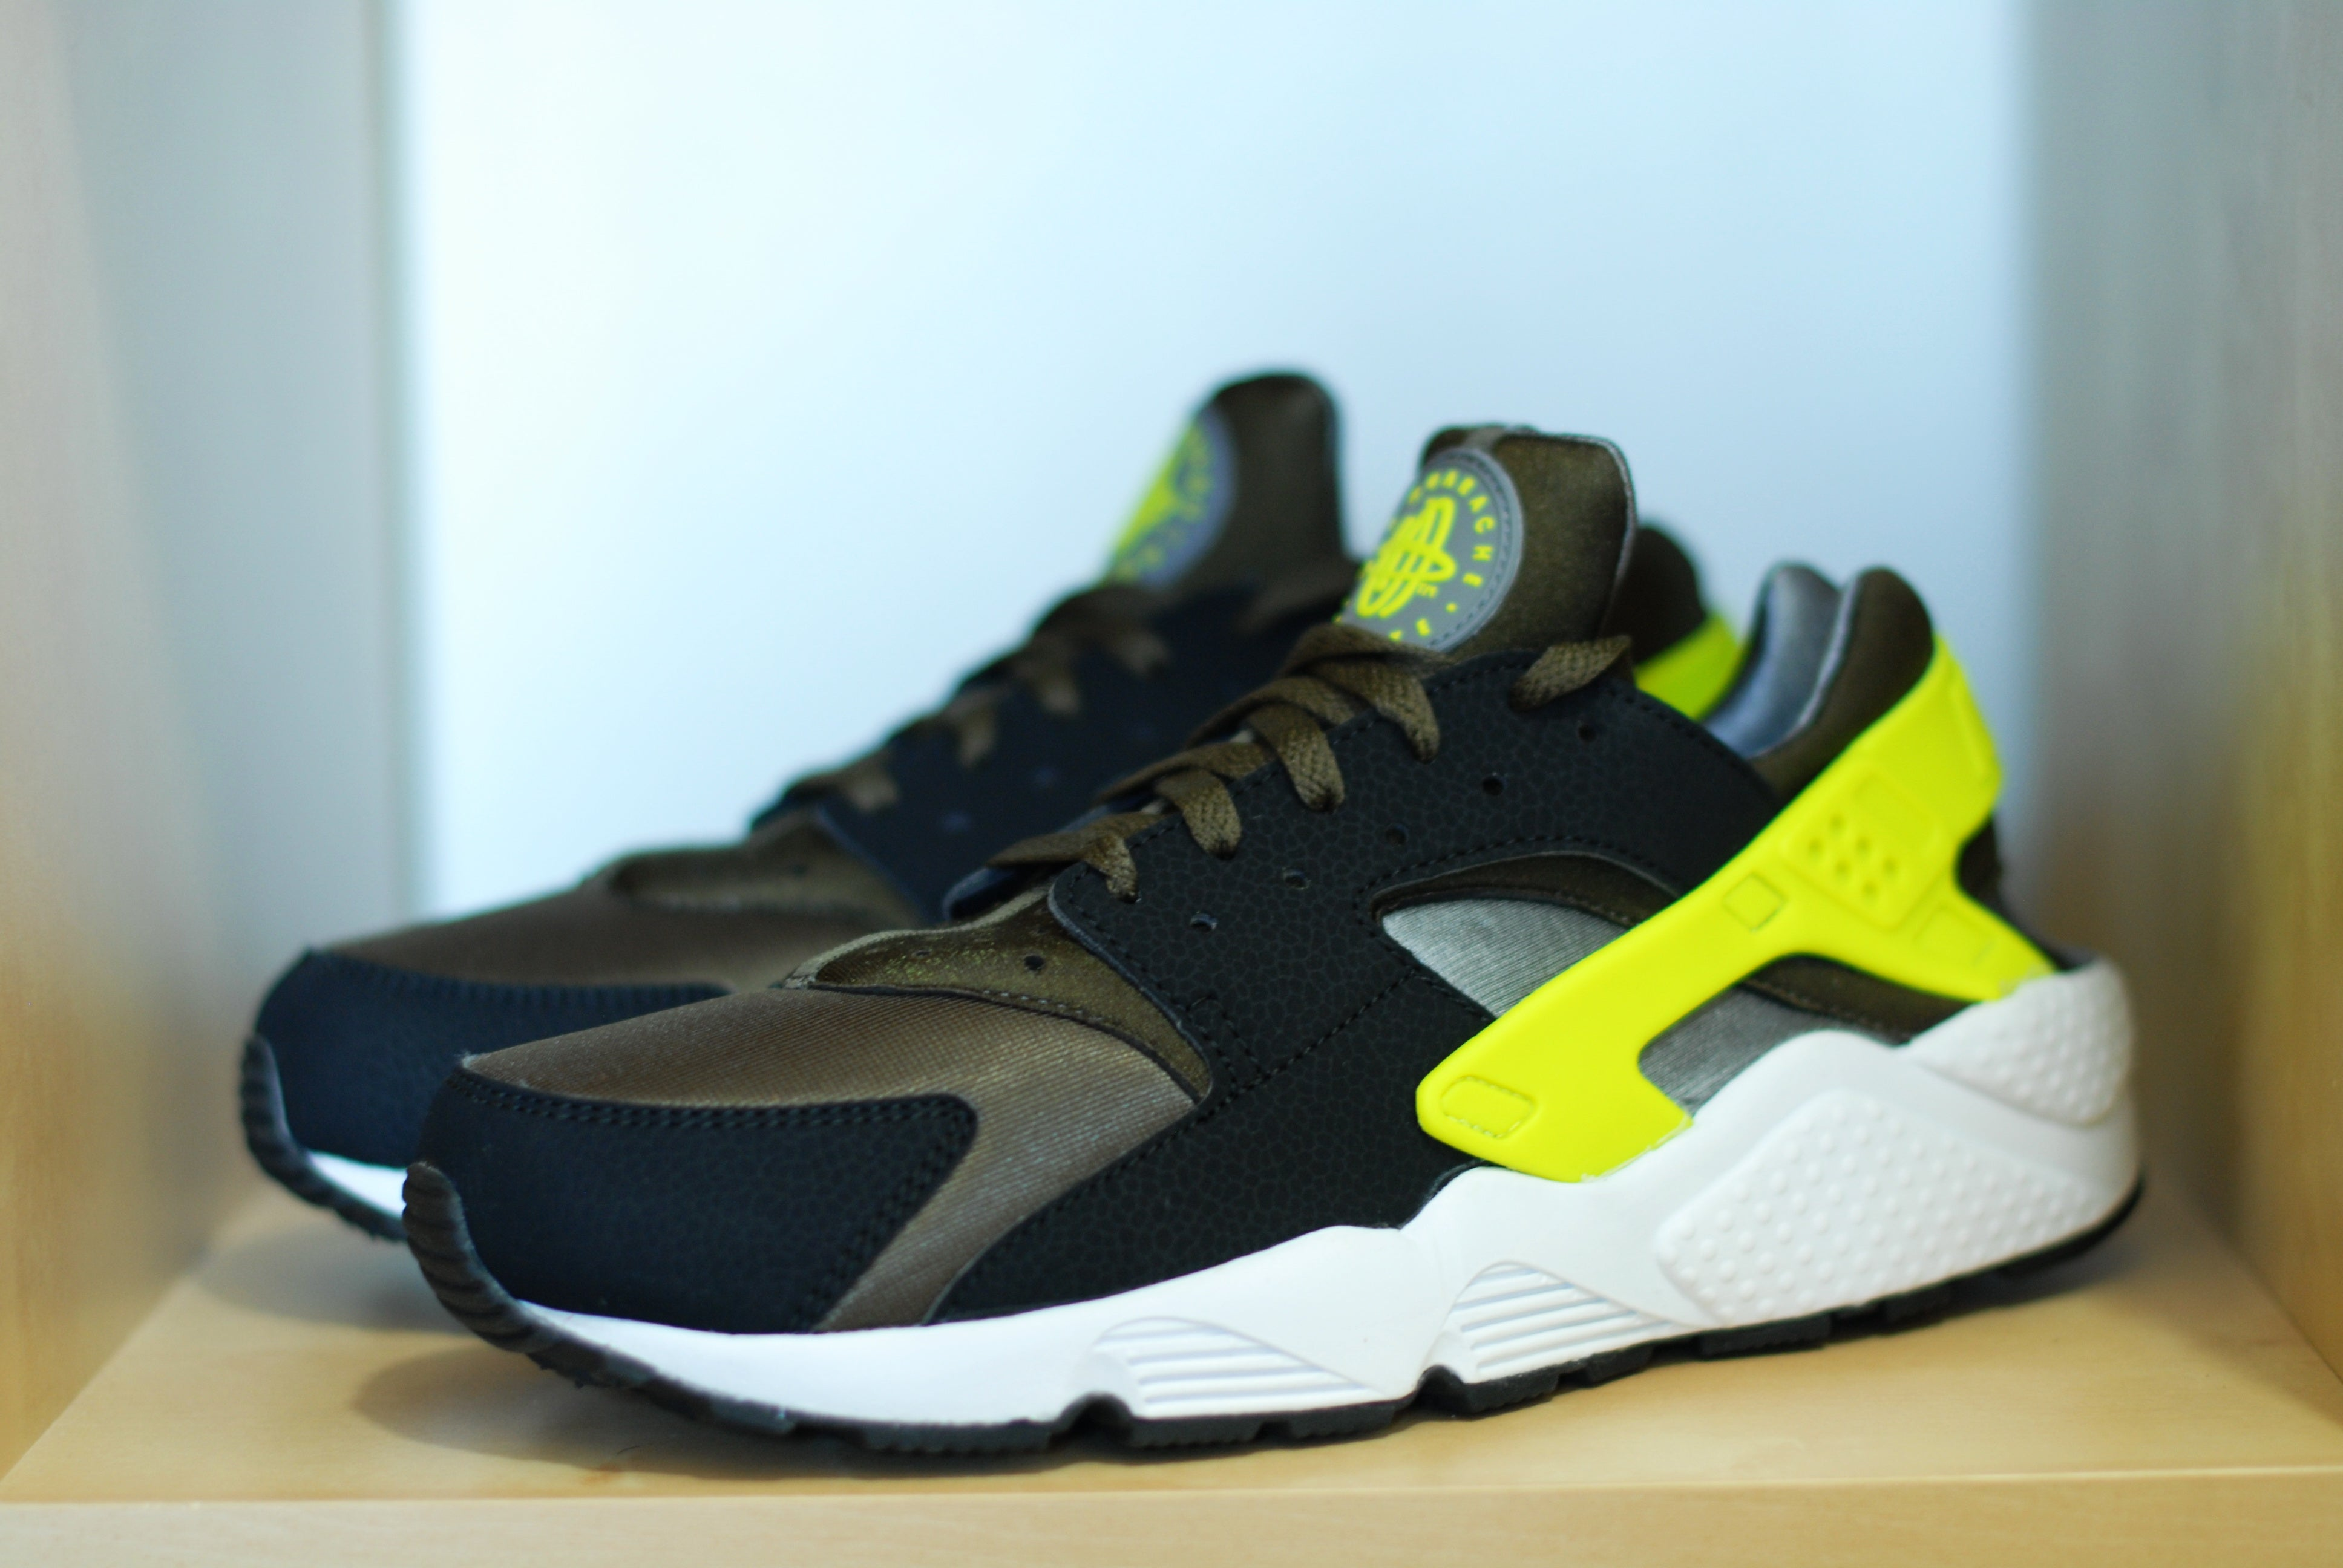 fd9048448d24 Nike Huarache Green And Yellow Blue Black Nike Shoes With Mexico ...